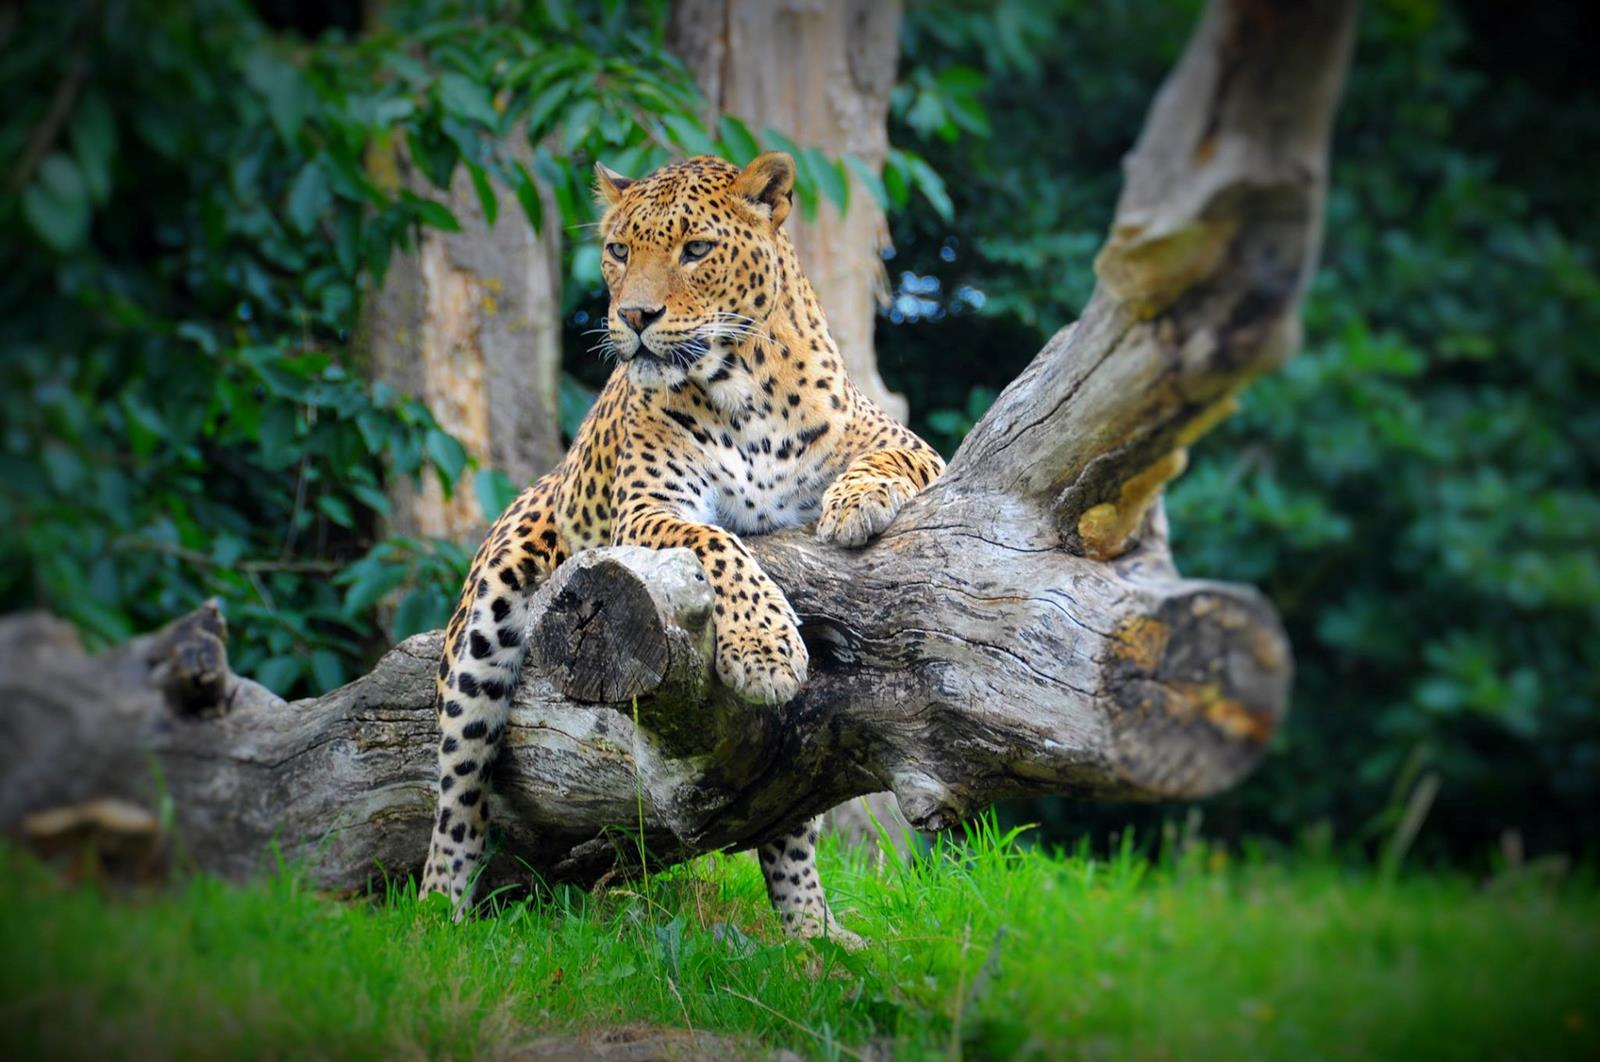 Applewood Special Entry Offer at Banham Zoo